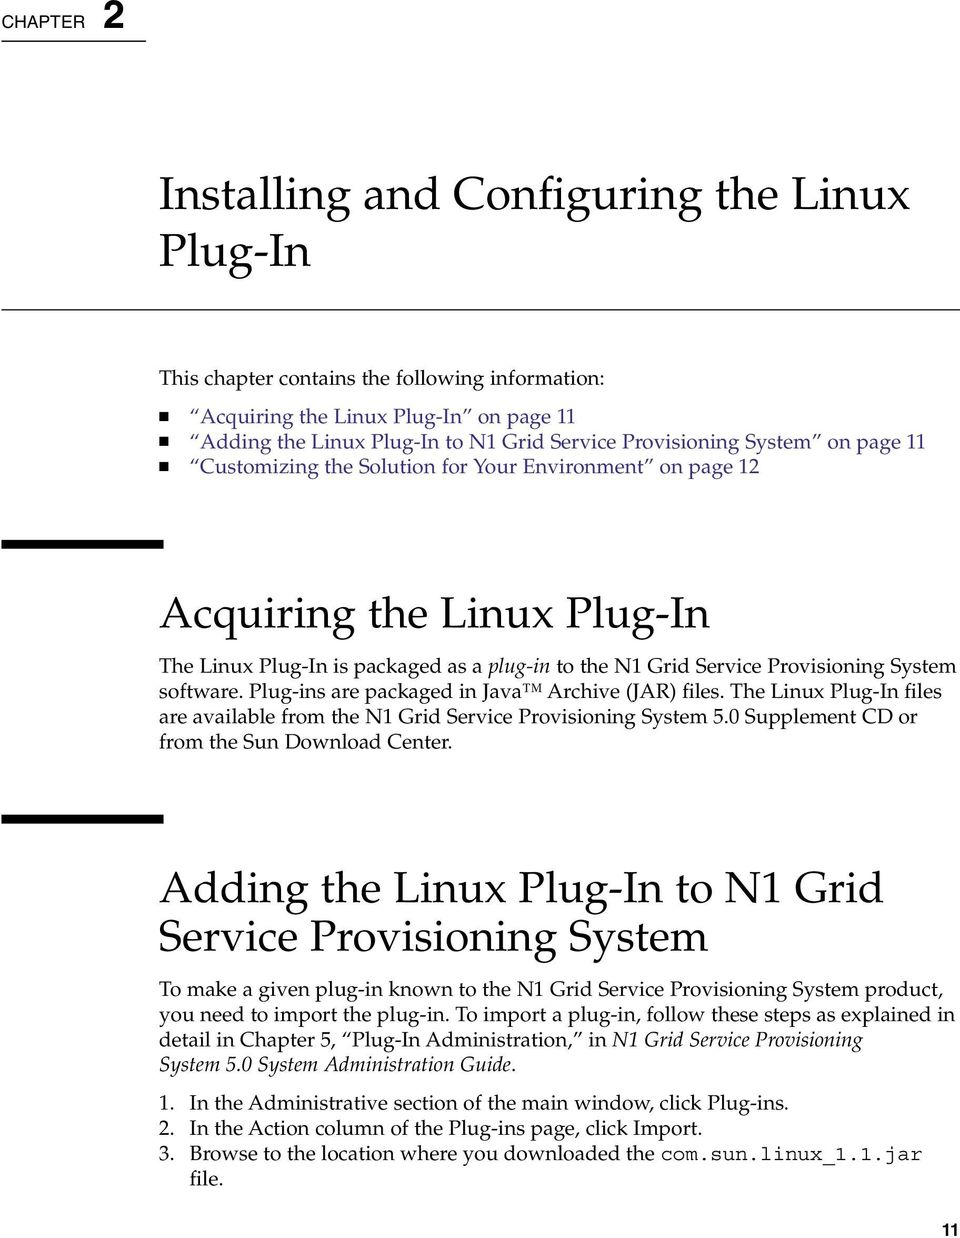 Plug-ins are packaged in Java Archive (JAR) files. The Linux Plug-In files are available from the N1 Grid Service Provisioning System 5.0 Supplement CD or from the Sun Download Center.